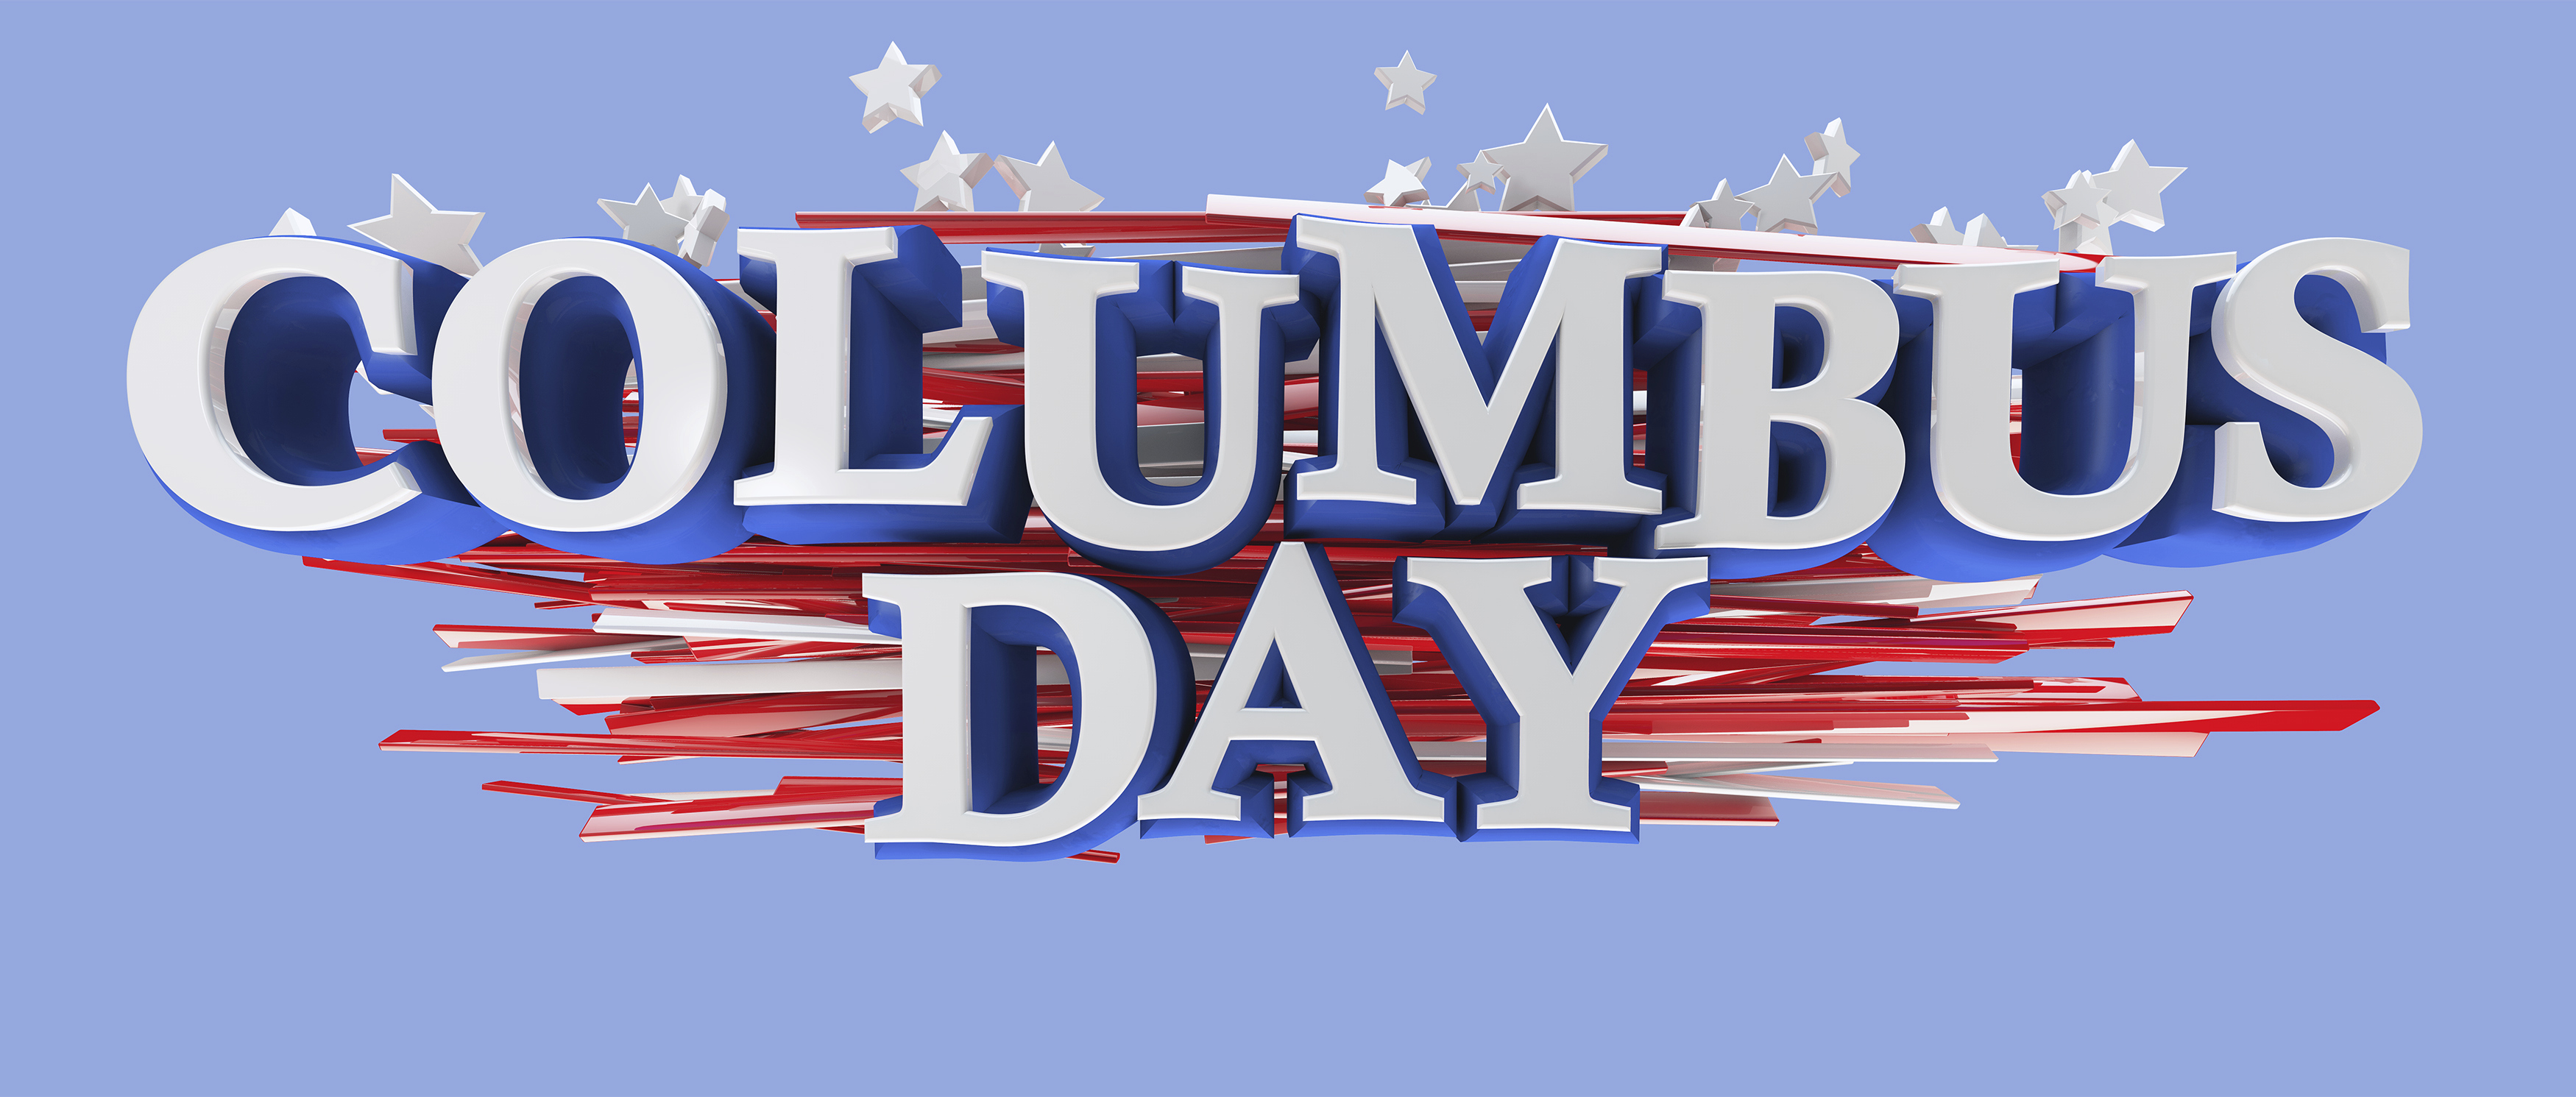 Check Out These Columbus Day Weekend Events